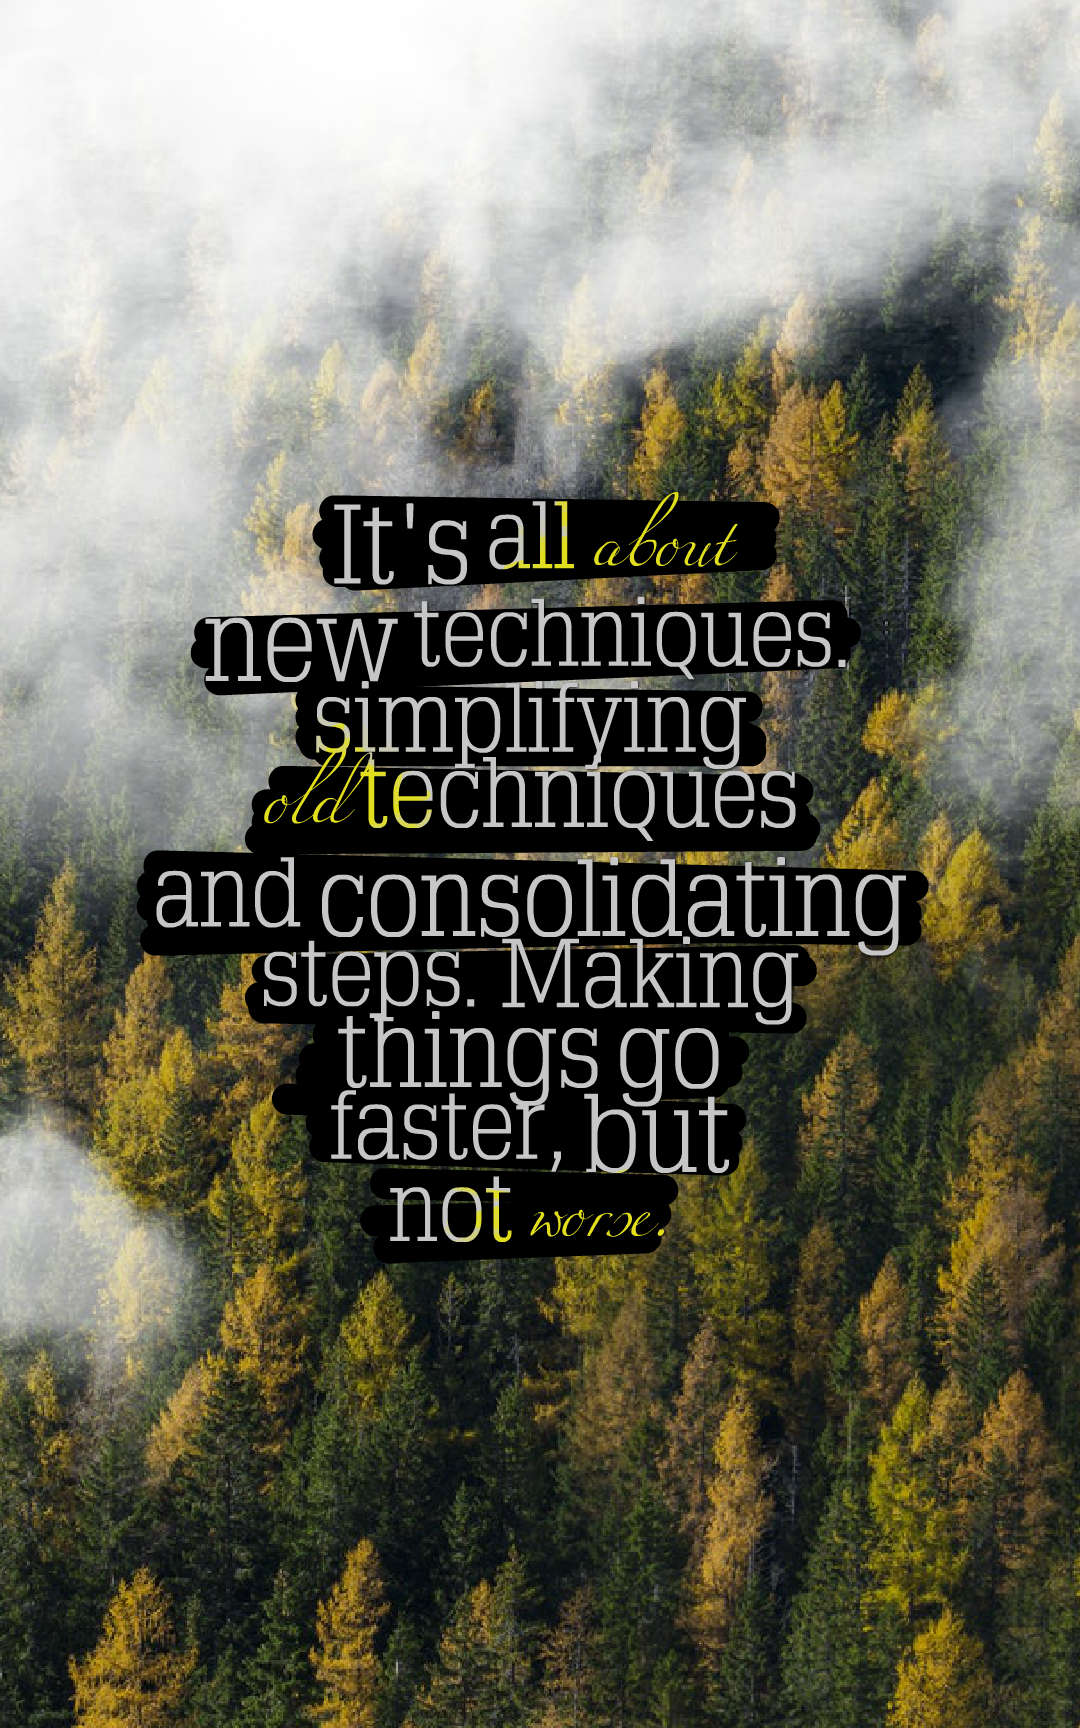 Quotes image of It's all about new techniques. simplifying old techniques and consolidating steps. Making things go faster, but not worse.